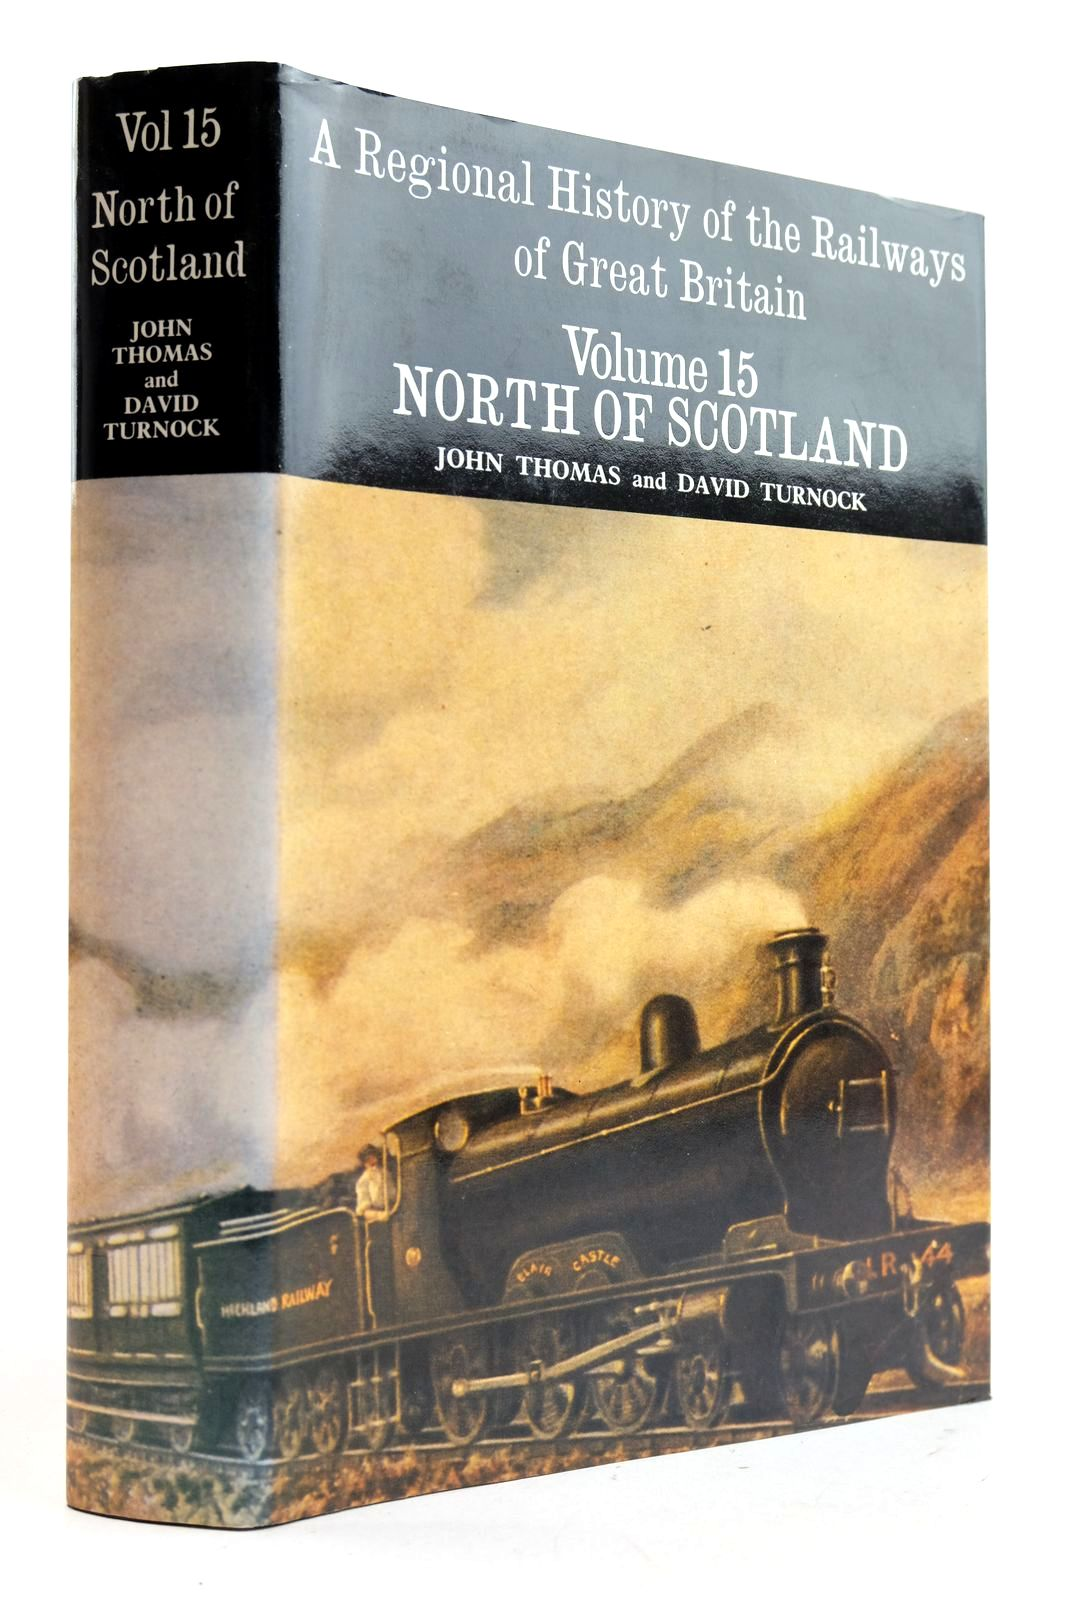 Photo of A REGIONAL HISTORY OF THE RAILWAYS OF GREAT BRITAIN VOLUME XV THE NORTH OF SCOTLAND written by Thomas, John Turnock, D. published by David St John Thomas, David & Charles (STOCK CODE: 2133056)  for sale by Stella & Rose's Books